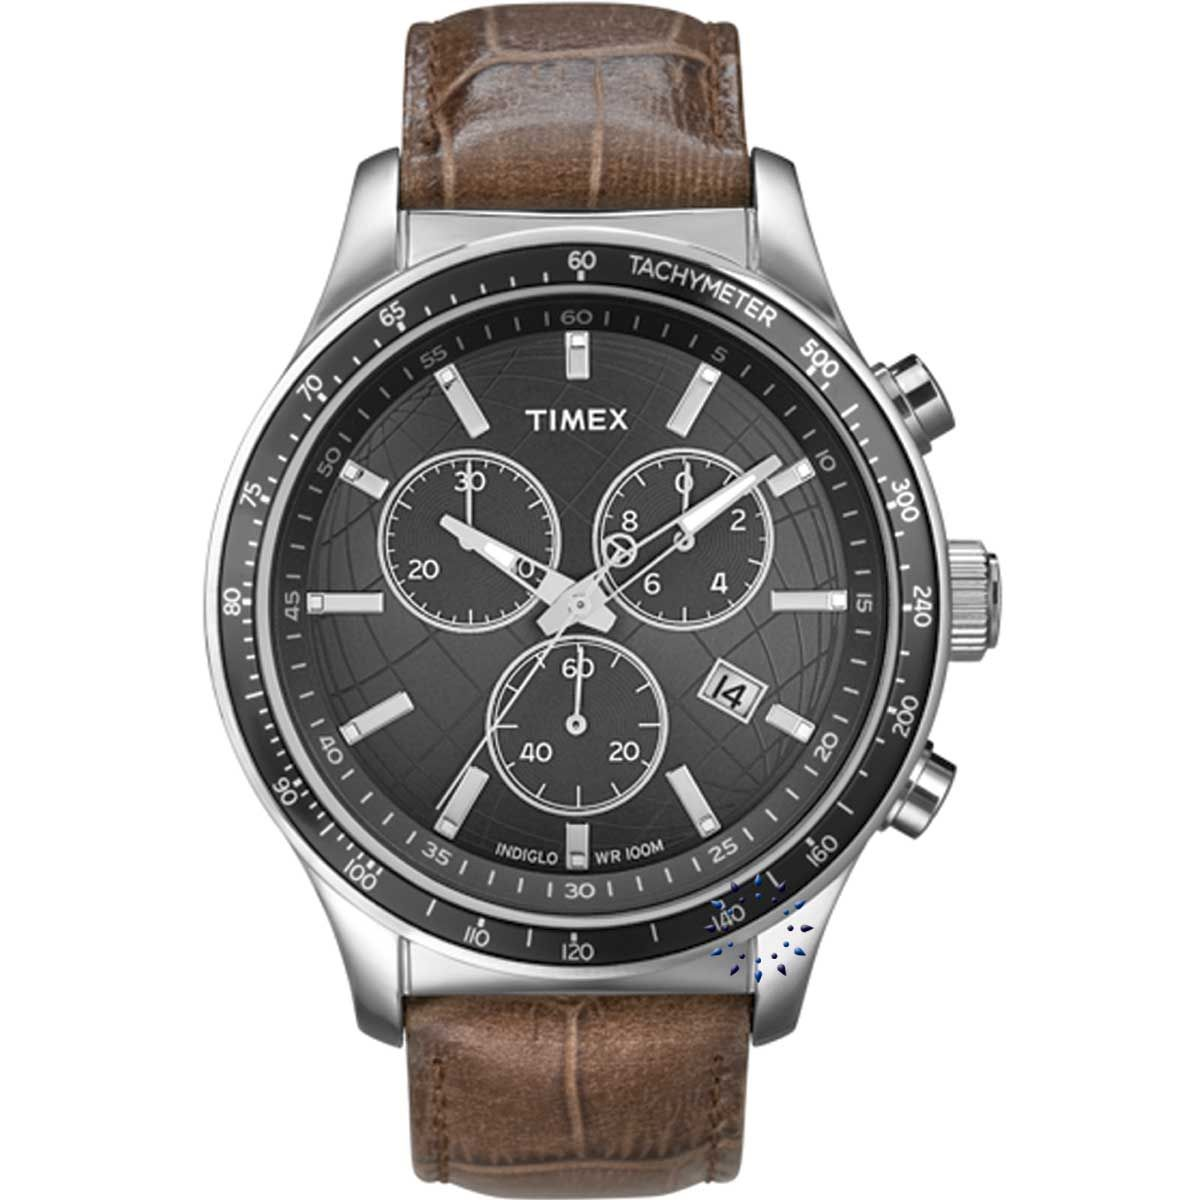 TIMEX MENS WATCHES - TIMEX Chronograph Brown Leather Strap - FashionFilmsNYC.com